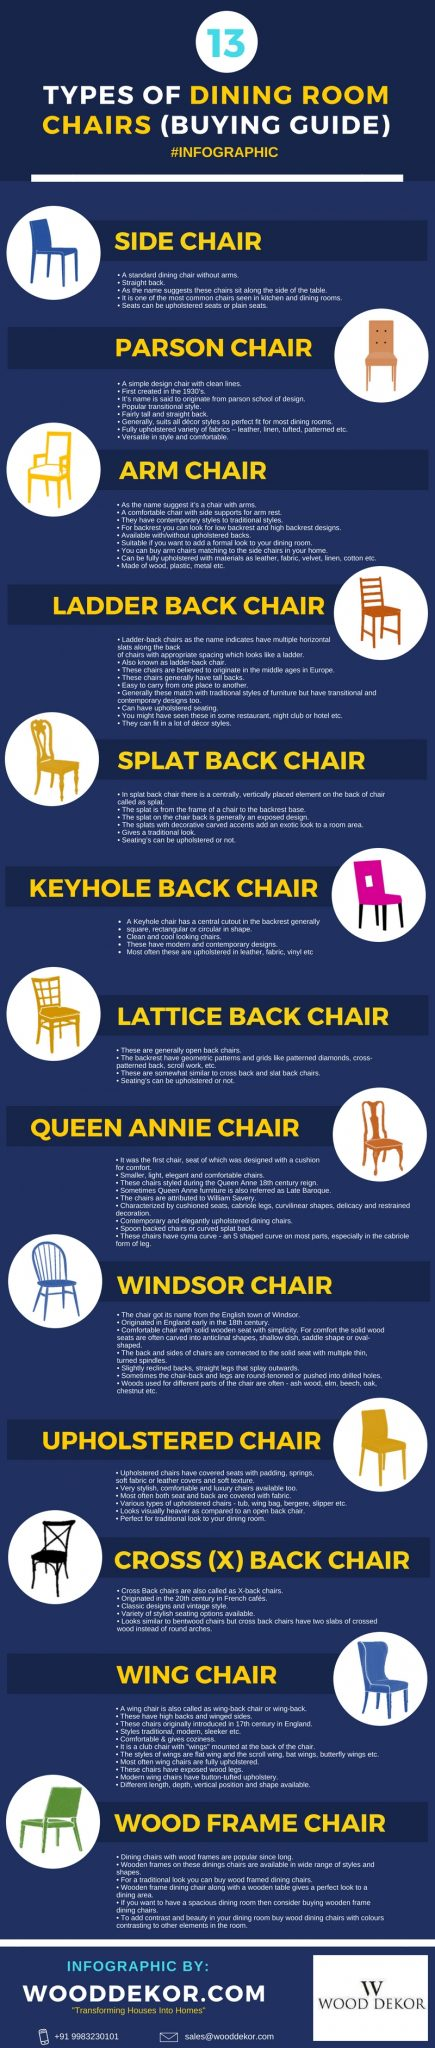 13 Types of Dining Chair (Buyers Guide) Infographic